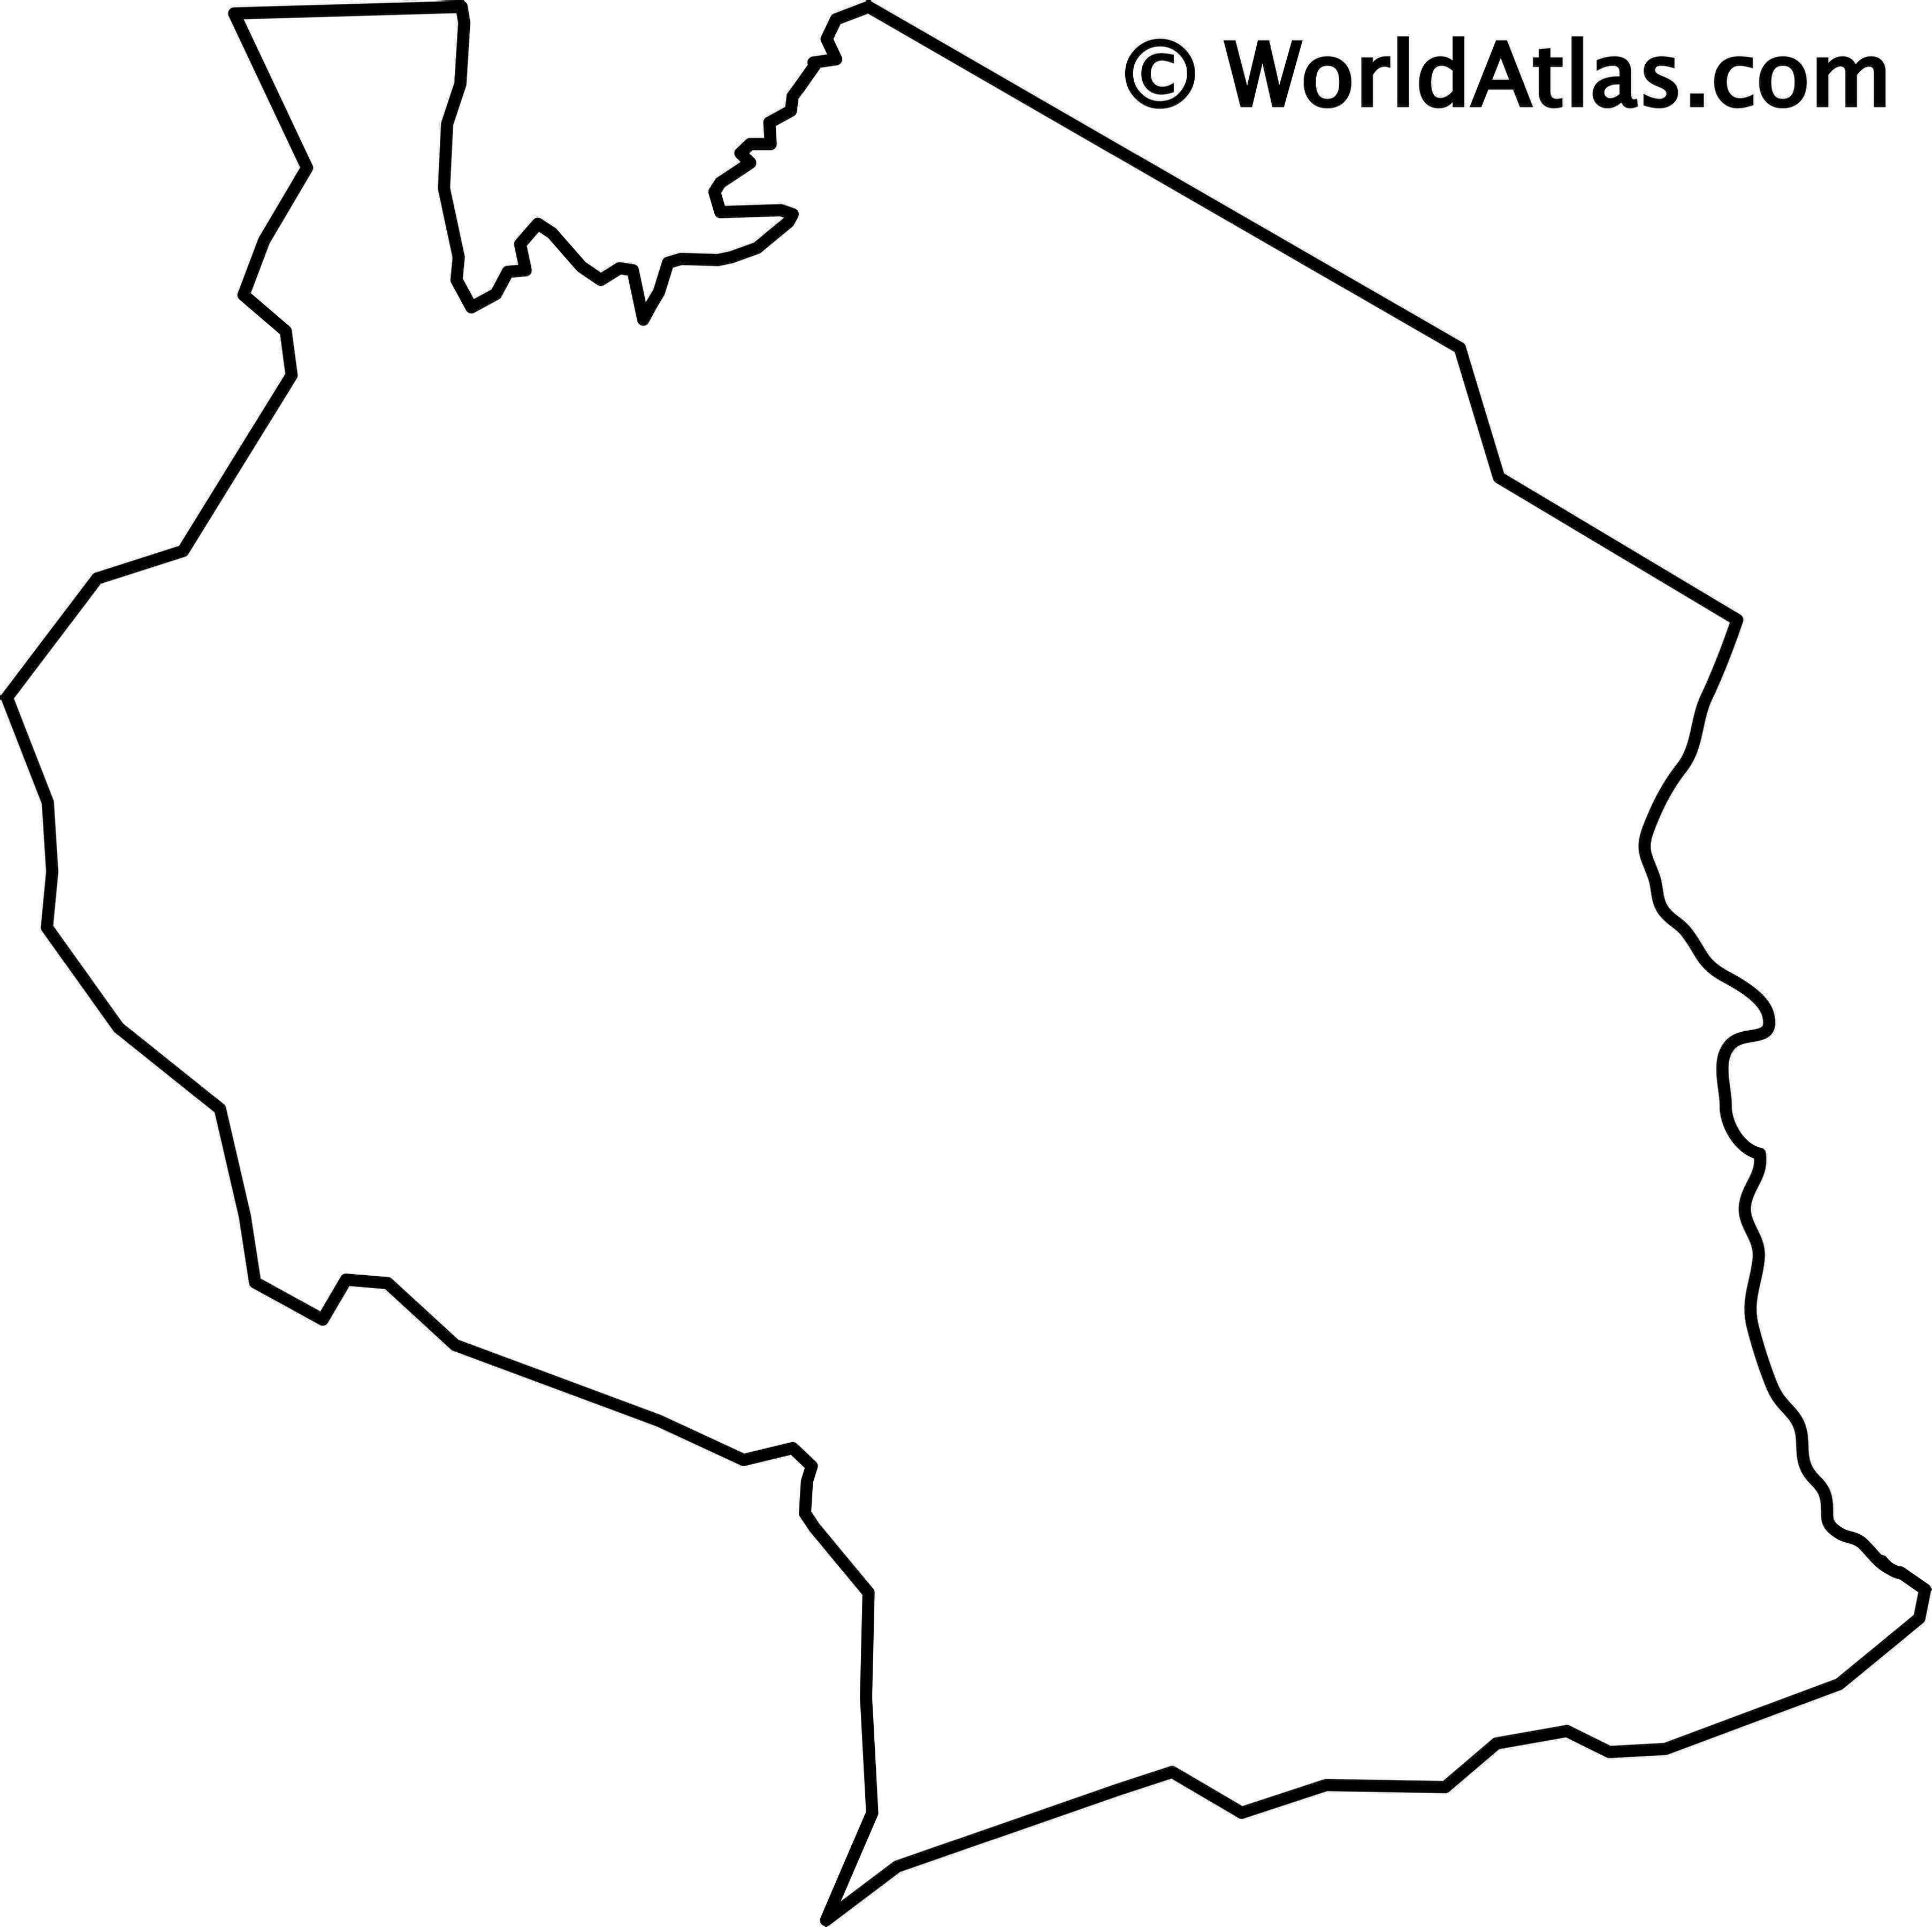 Blank Outline Map of Tanzania